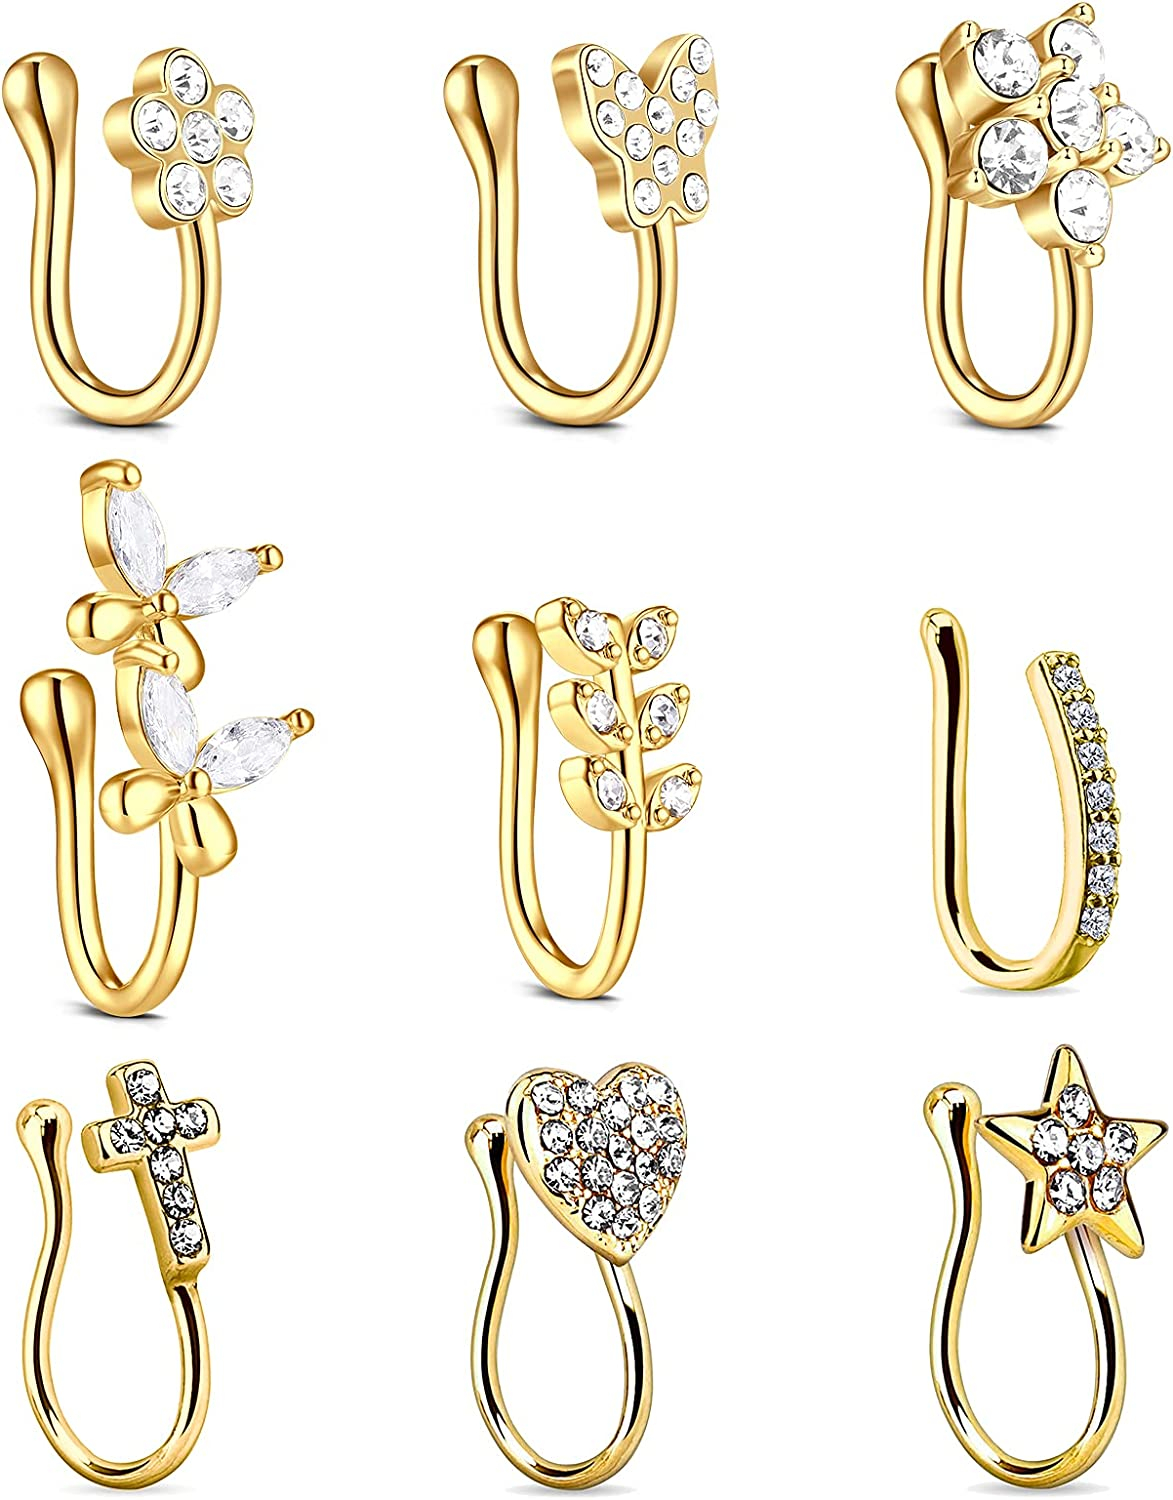 Incaton 9Pcs Fake Nose Rings Hoop Gold Nose Cuff Non Piercing for Women Heart Star Leaf Butterfly CZ Clip On Faux Nose Rings